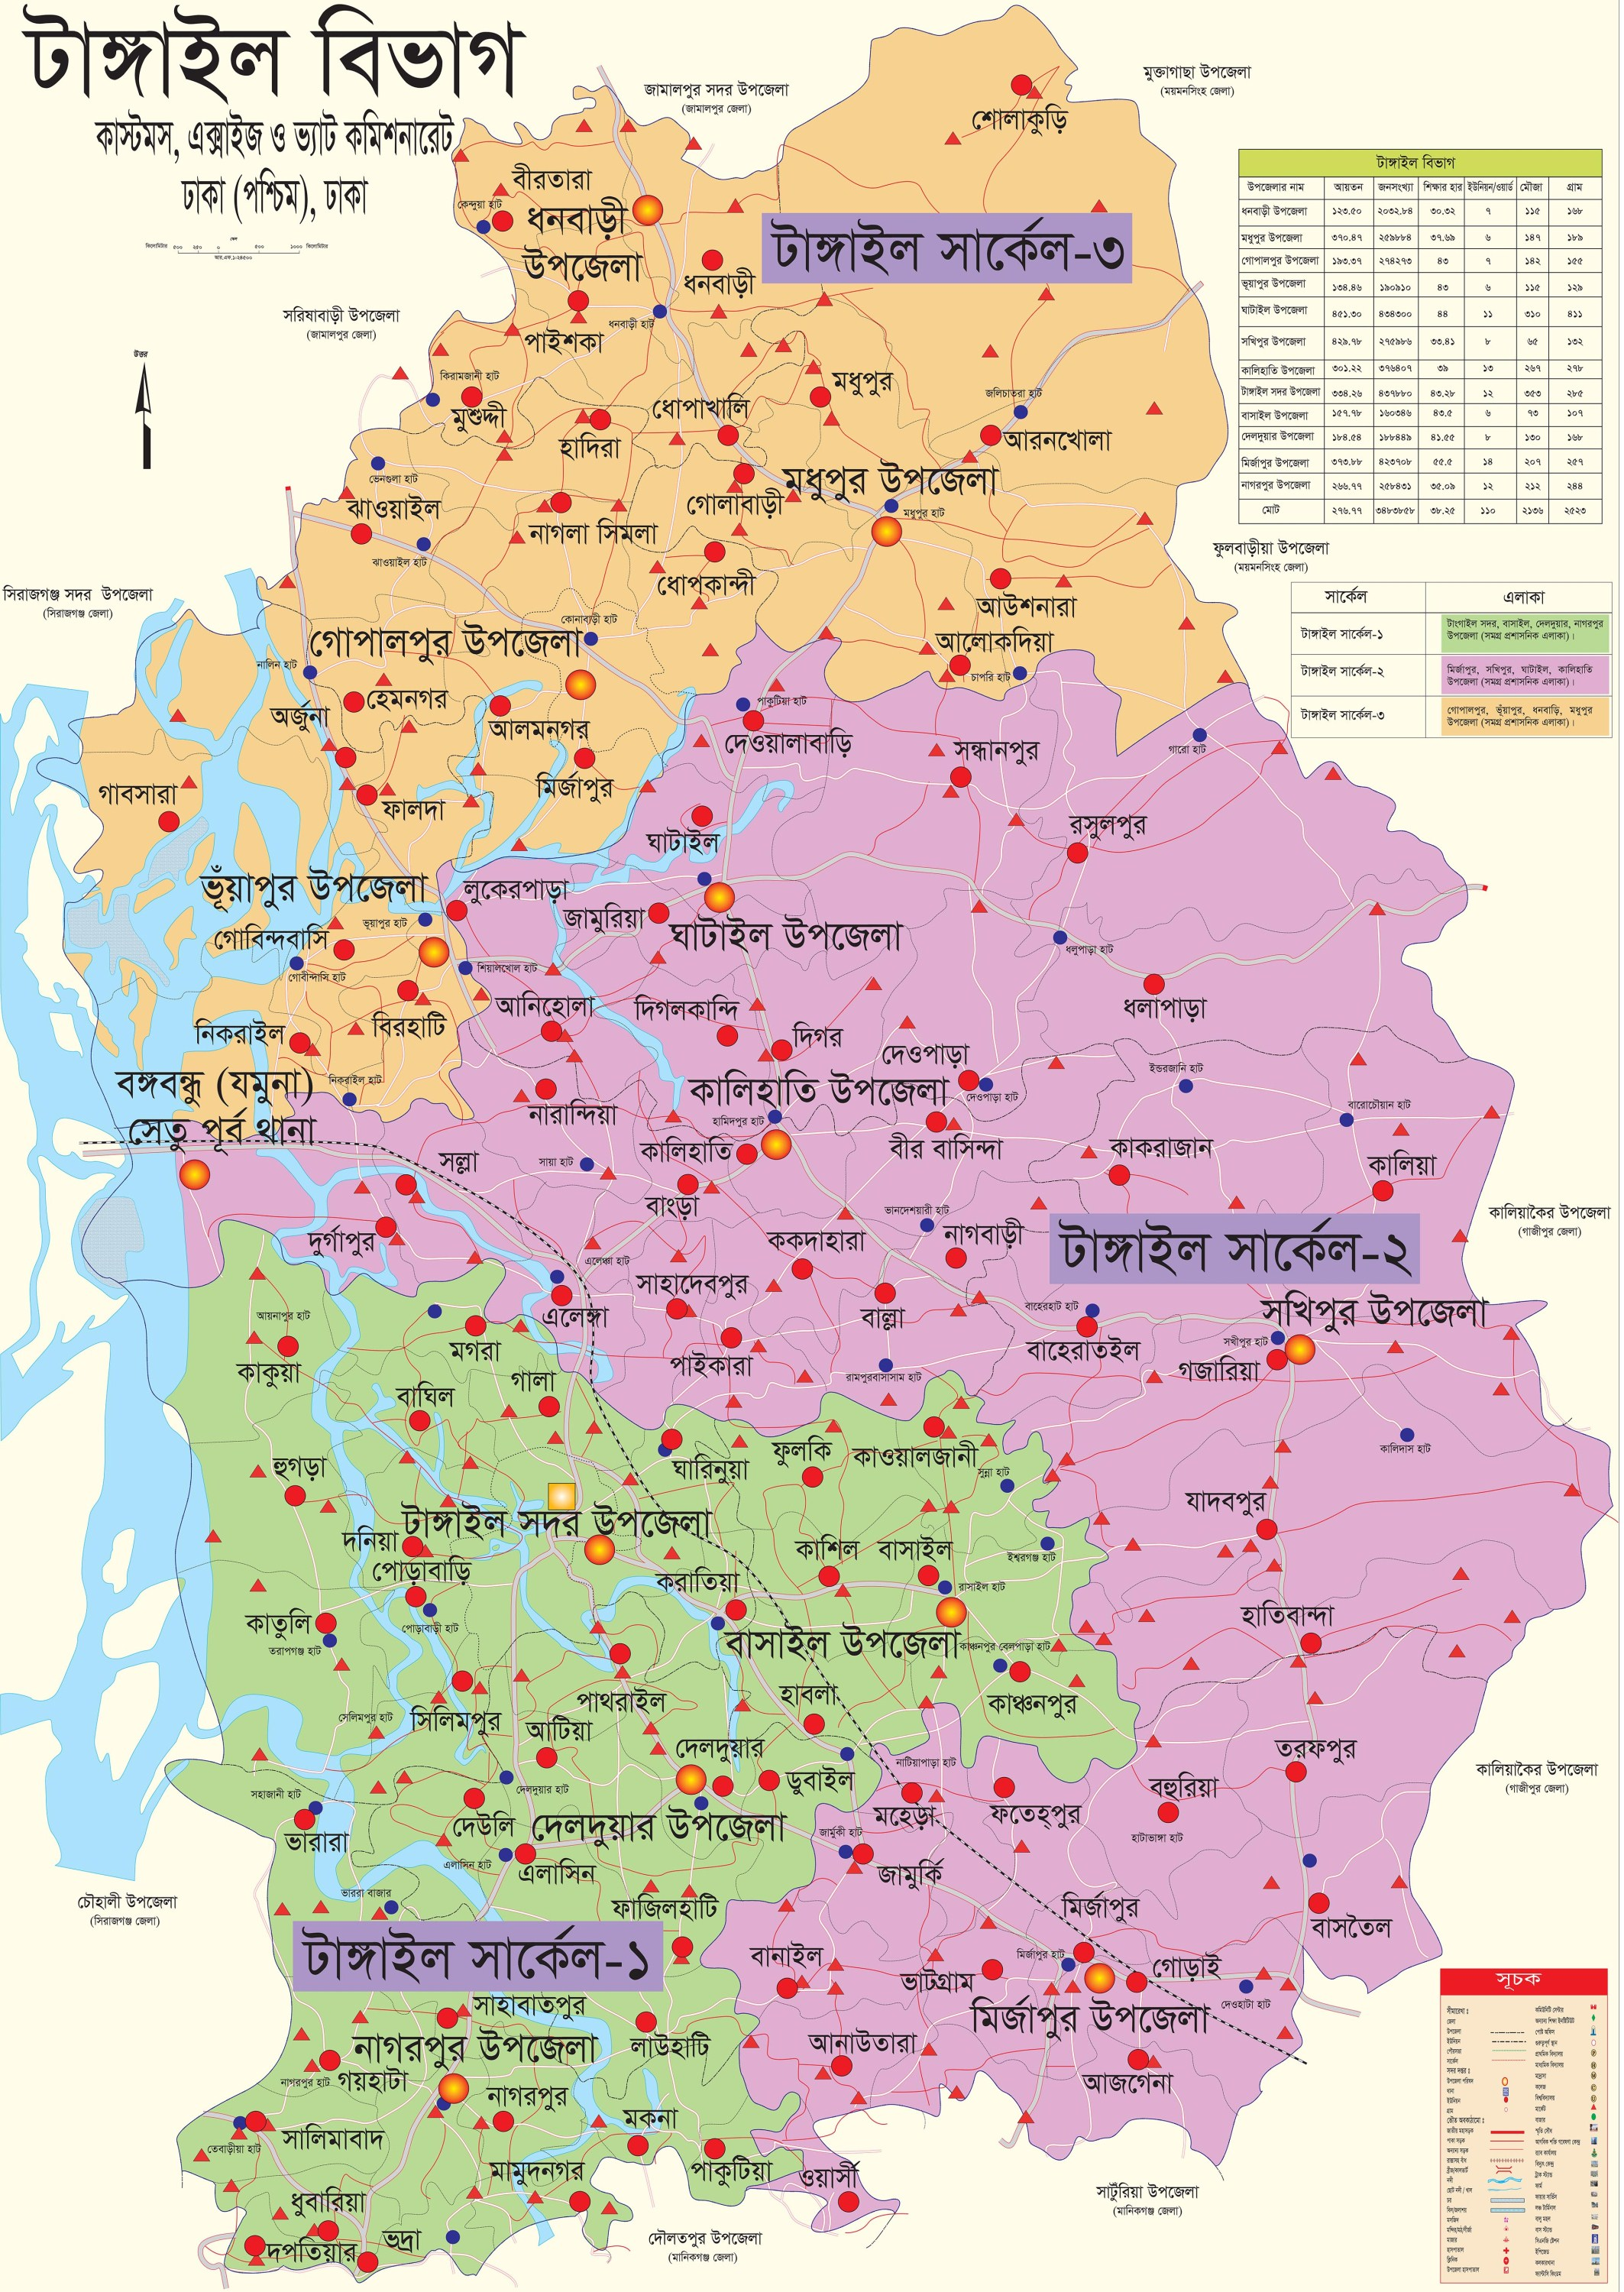 Dhaka West Commissionerate - Tangail map